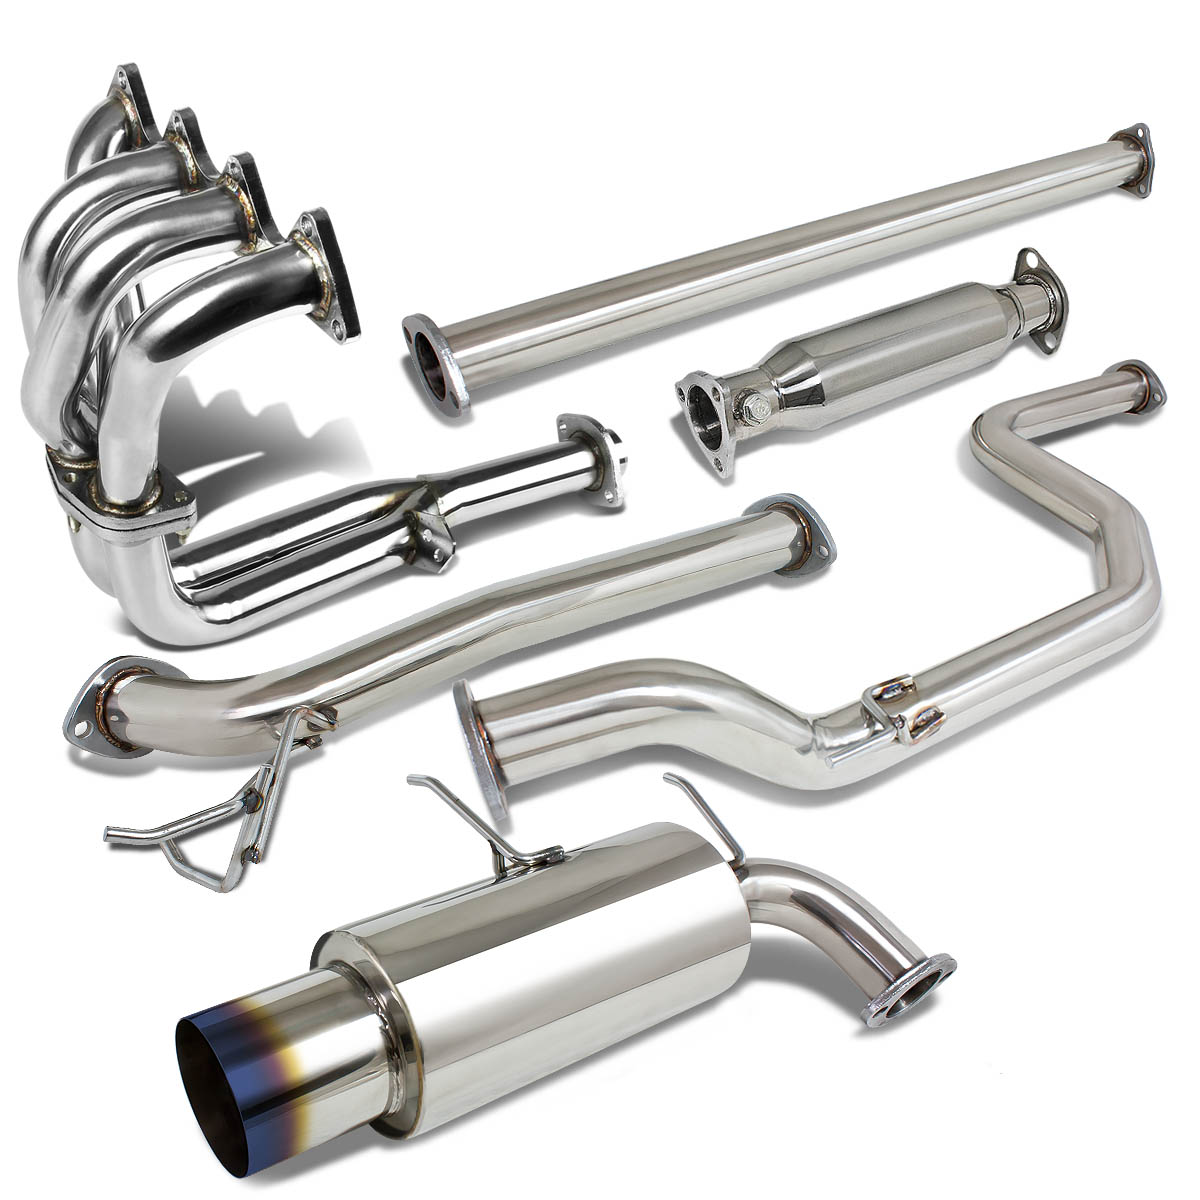 90-91 Acura Integra Racing Catback Exhaust System 4.5